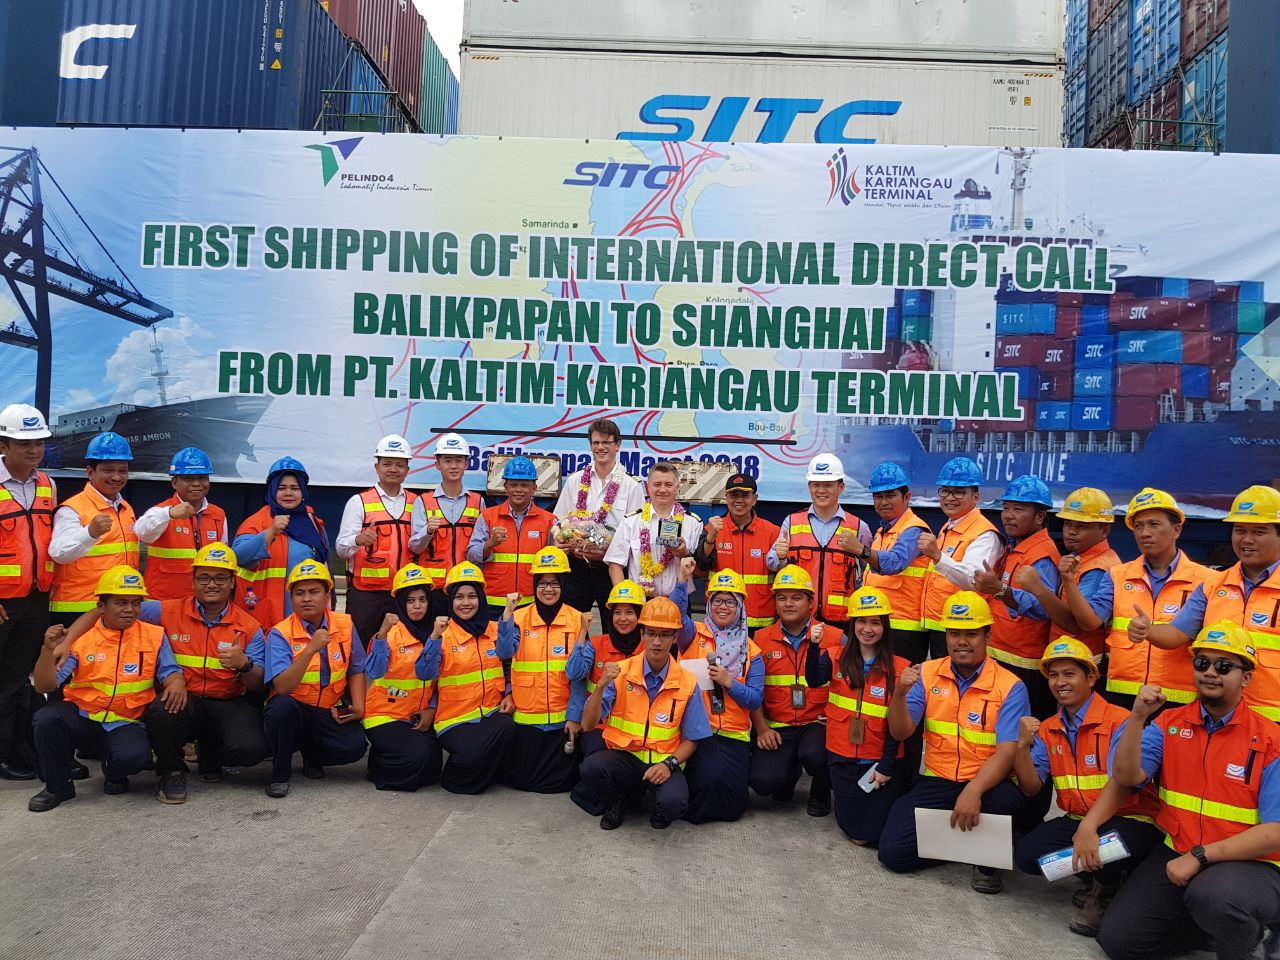 MV.LAILA serving SITC Container Line Indonesia route slowly entered the KKT (PT. Kaltim Kariangau Terminal) container terminal in Balikpapan, East Kalimantan, Indonesia